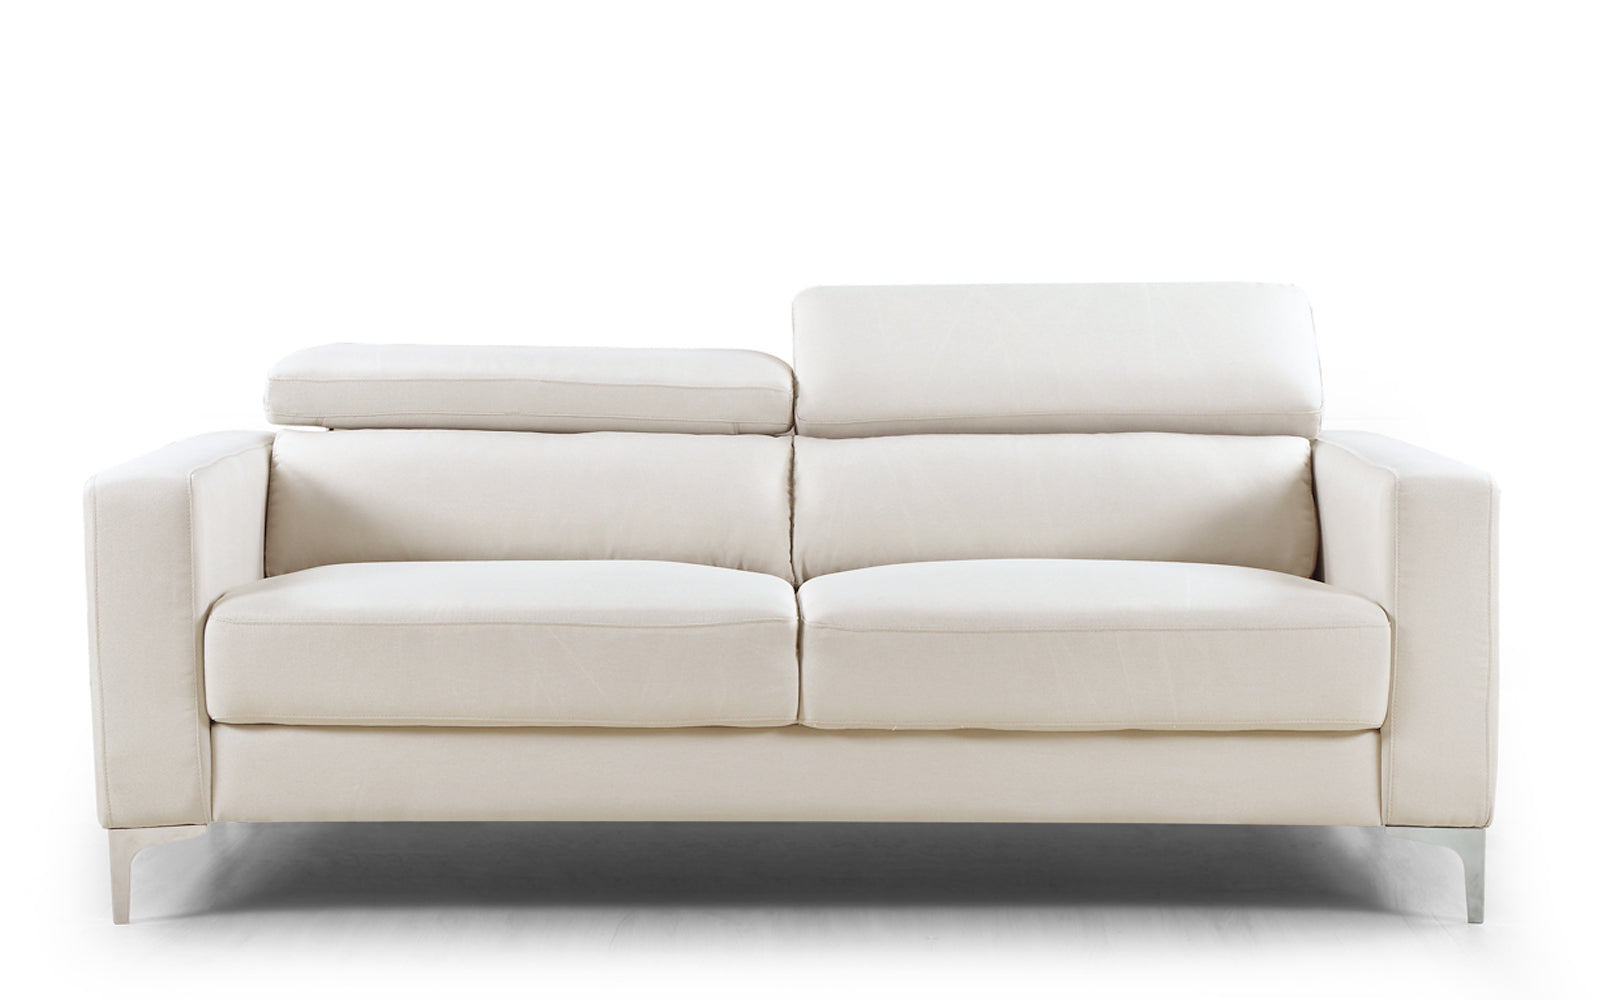 Wave Linen Upholstered Sofa Image